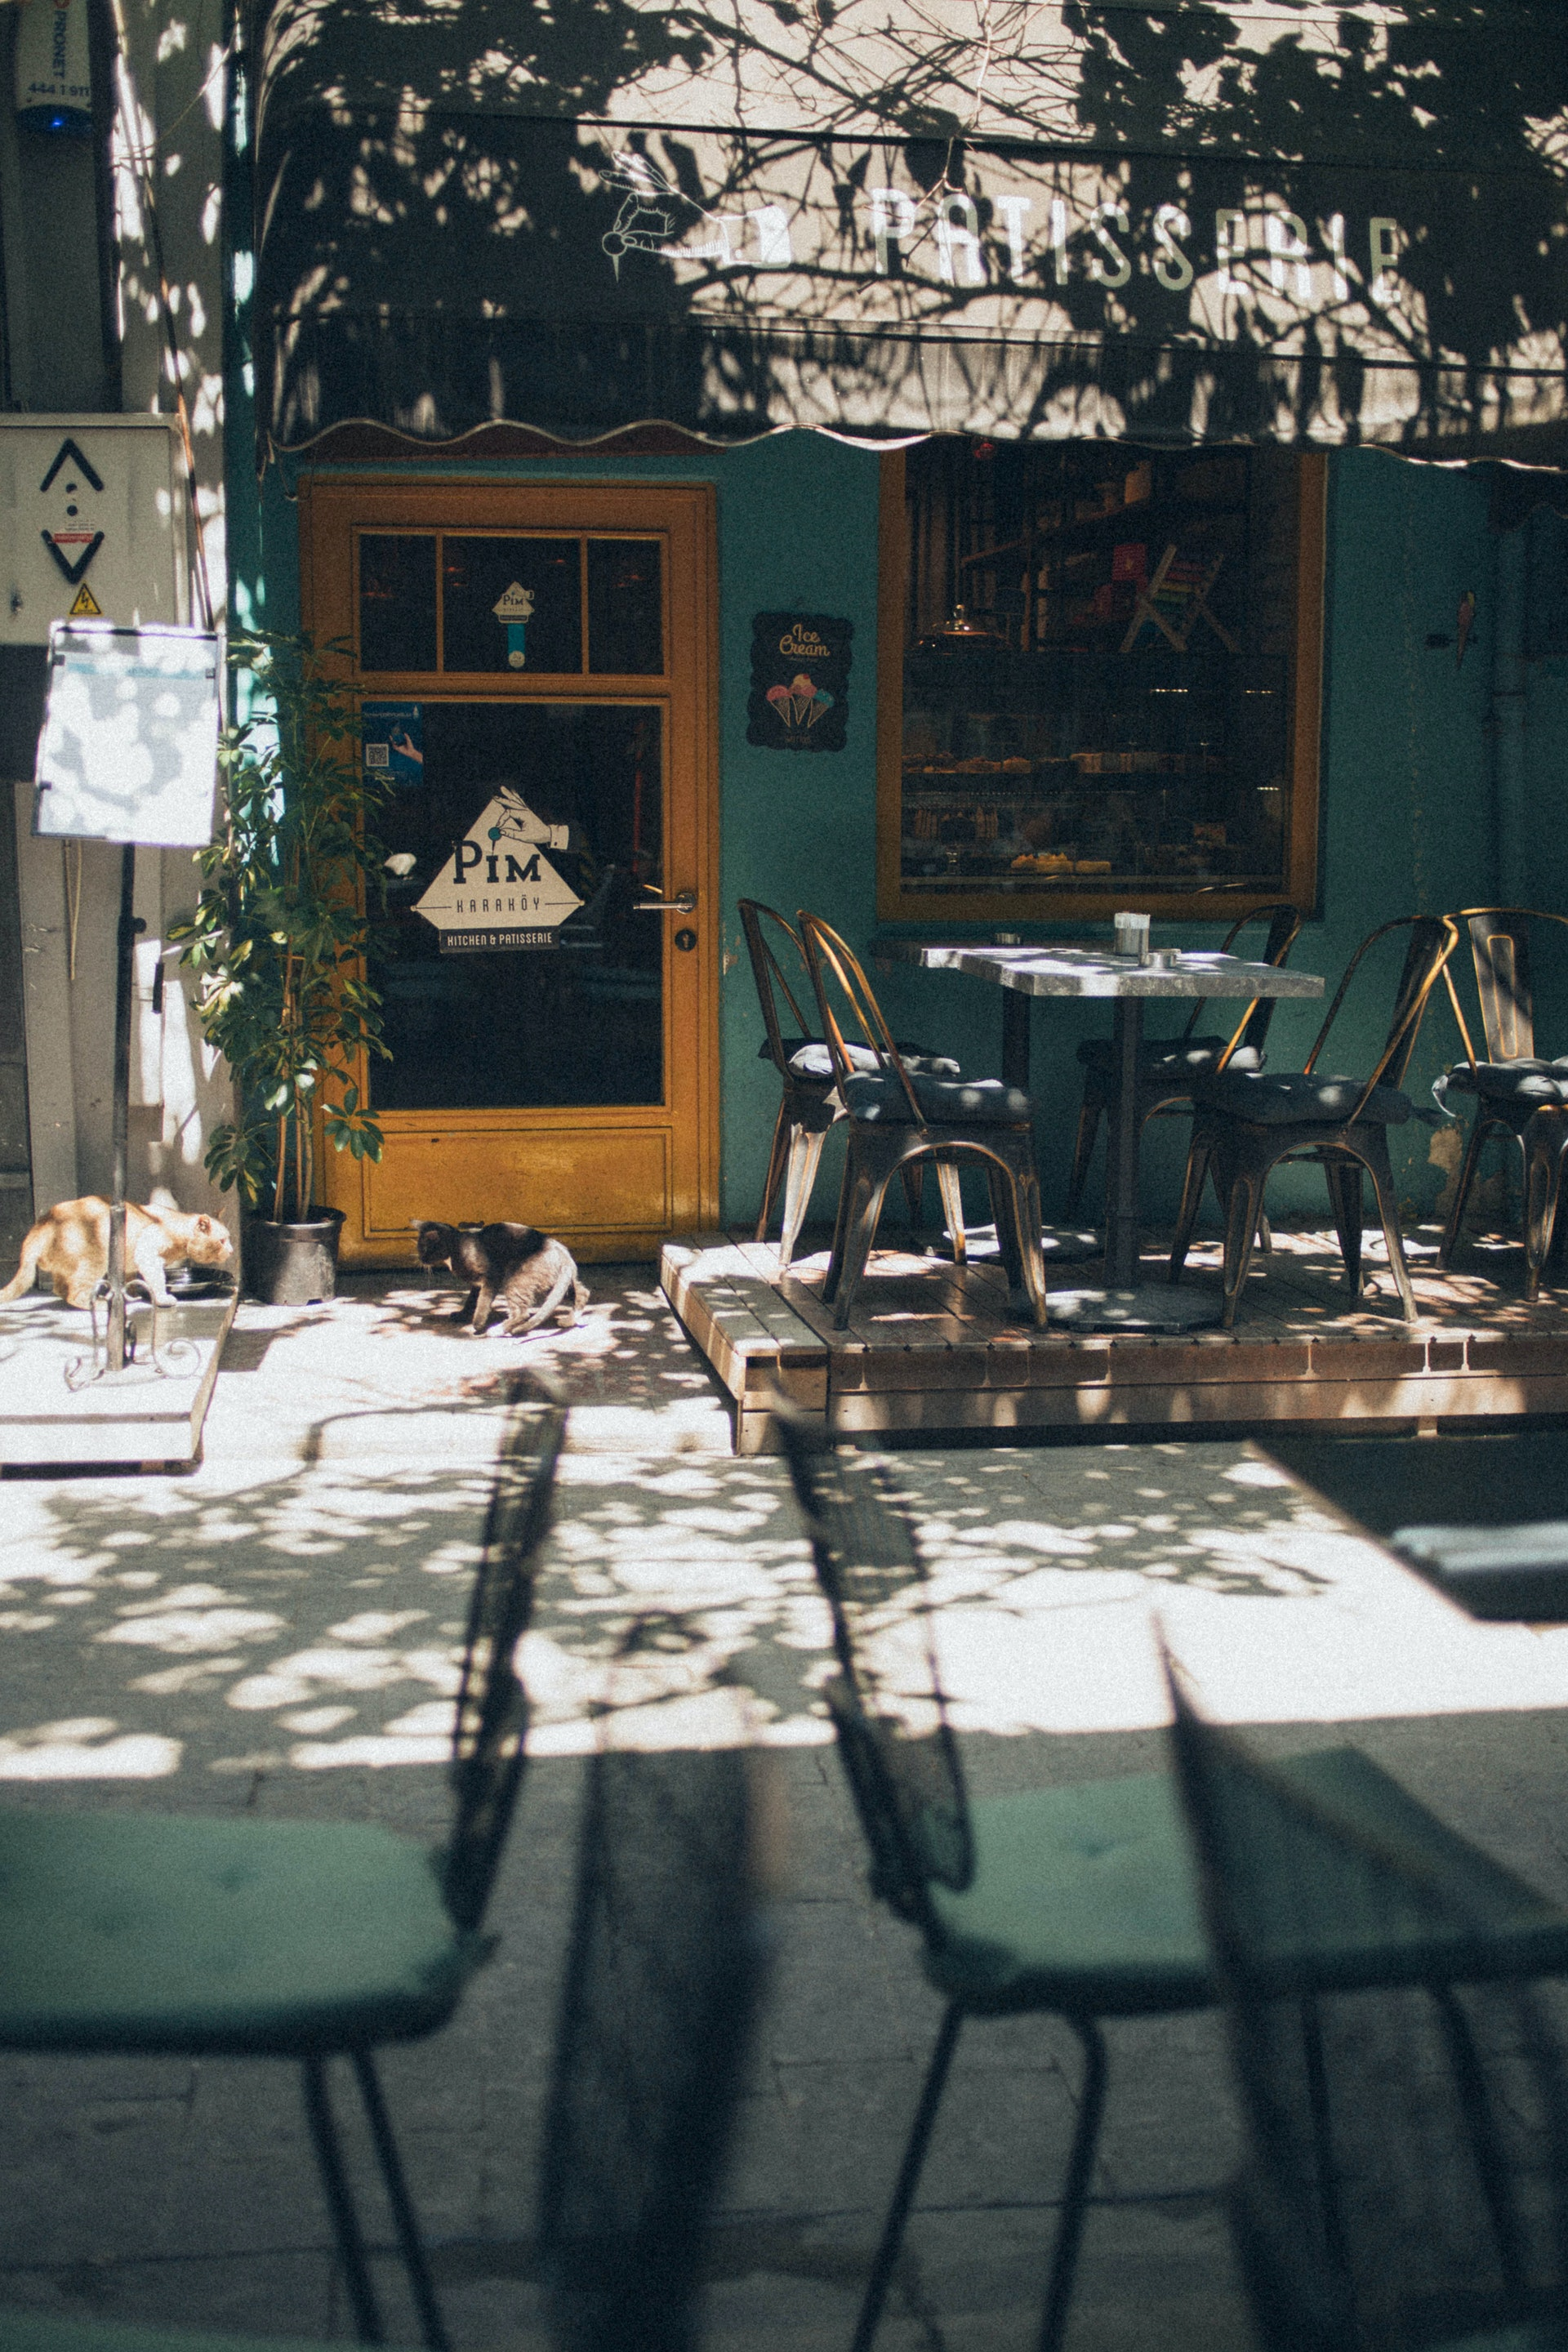 Exterior of street side cafe with two dogs and chairs